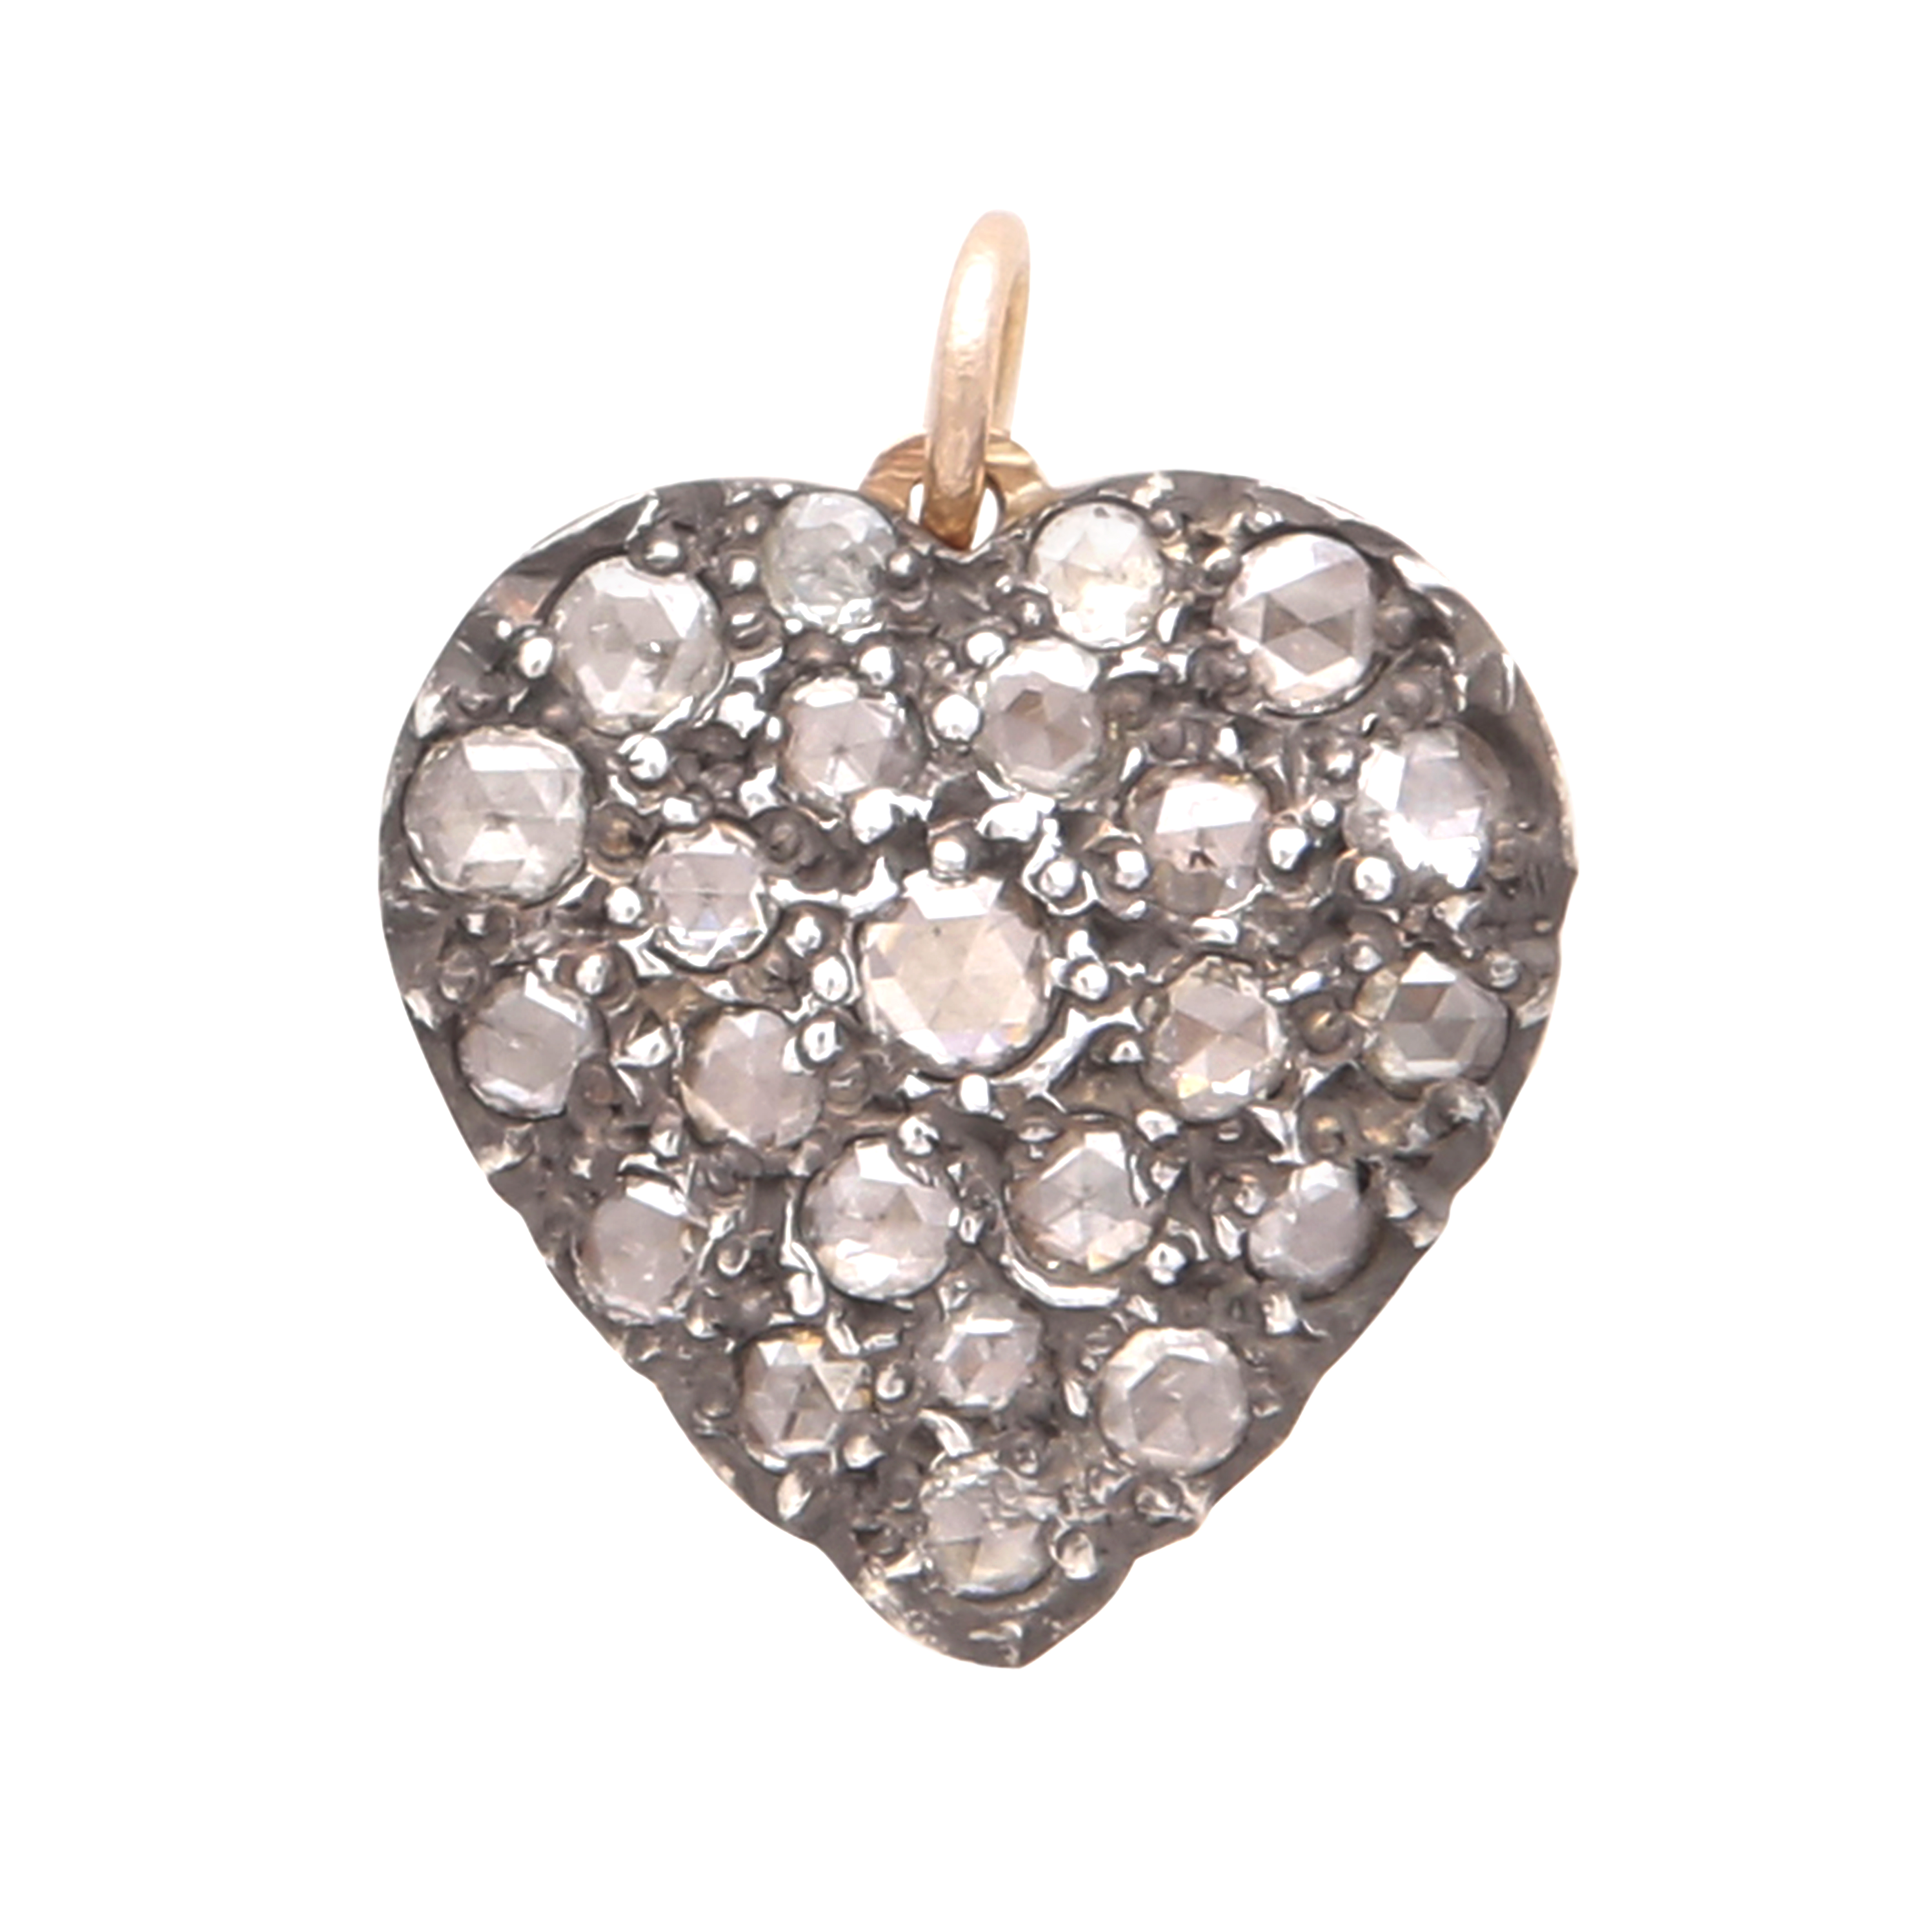 Los 19 - A DIAMOND HEART PENDANT designed as a heart, jewelled to the front with twenty-three rose cut